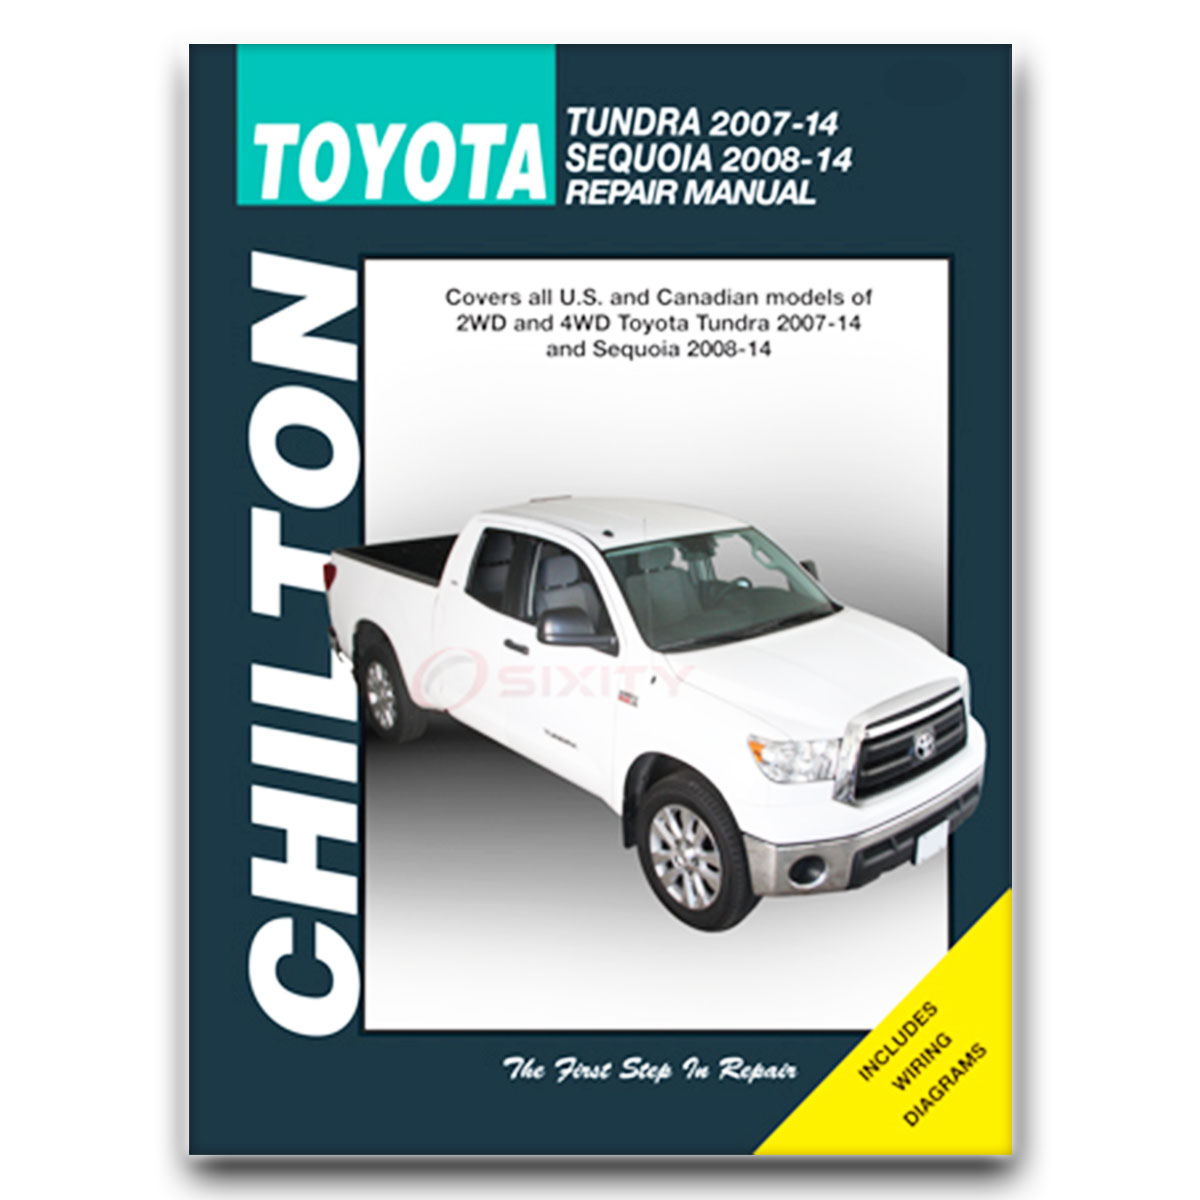 Chilton Repair Manual For 2007-2014 Toyota Tundra